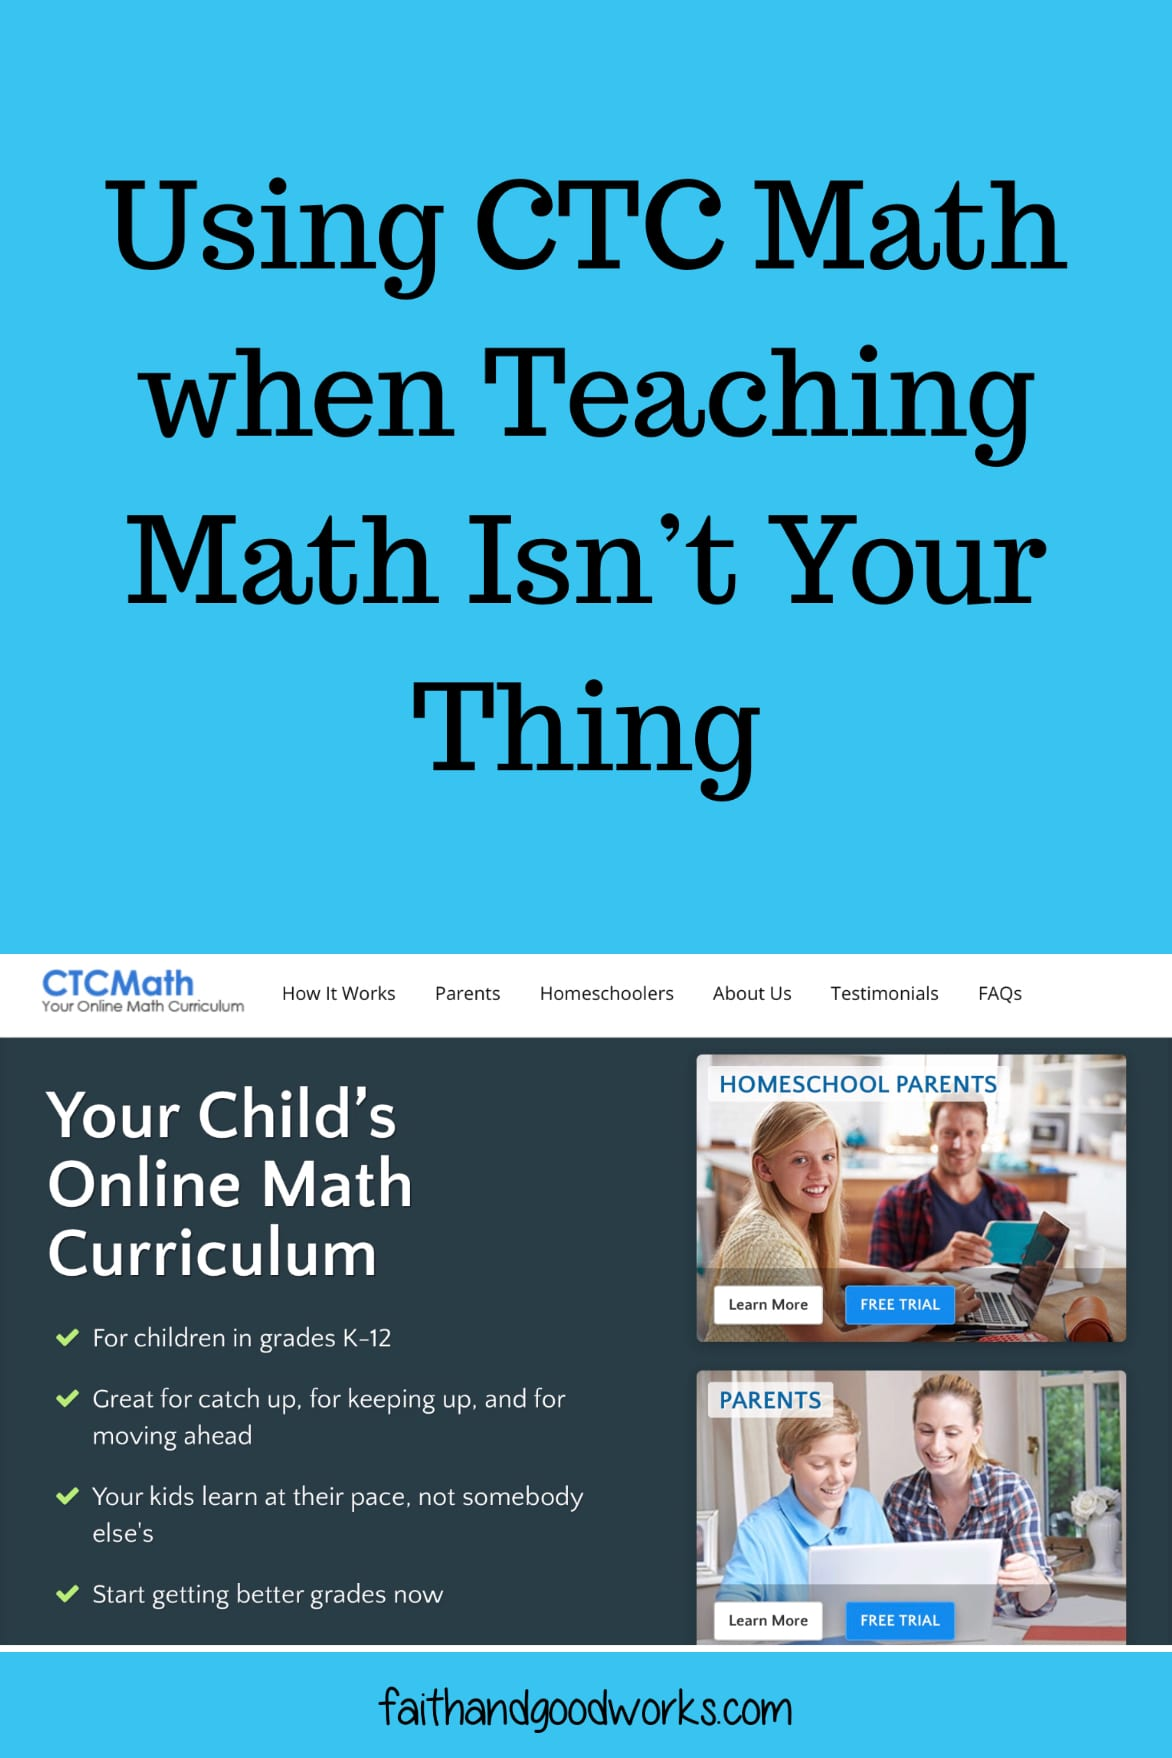 Teaching Math Using CTC Math:  When Math Isn't Your Thing